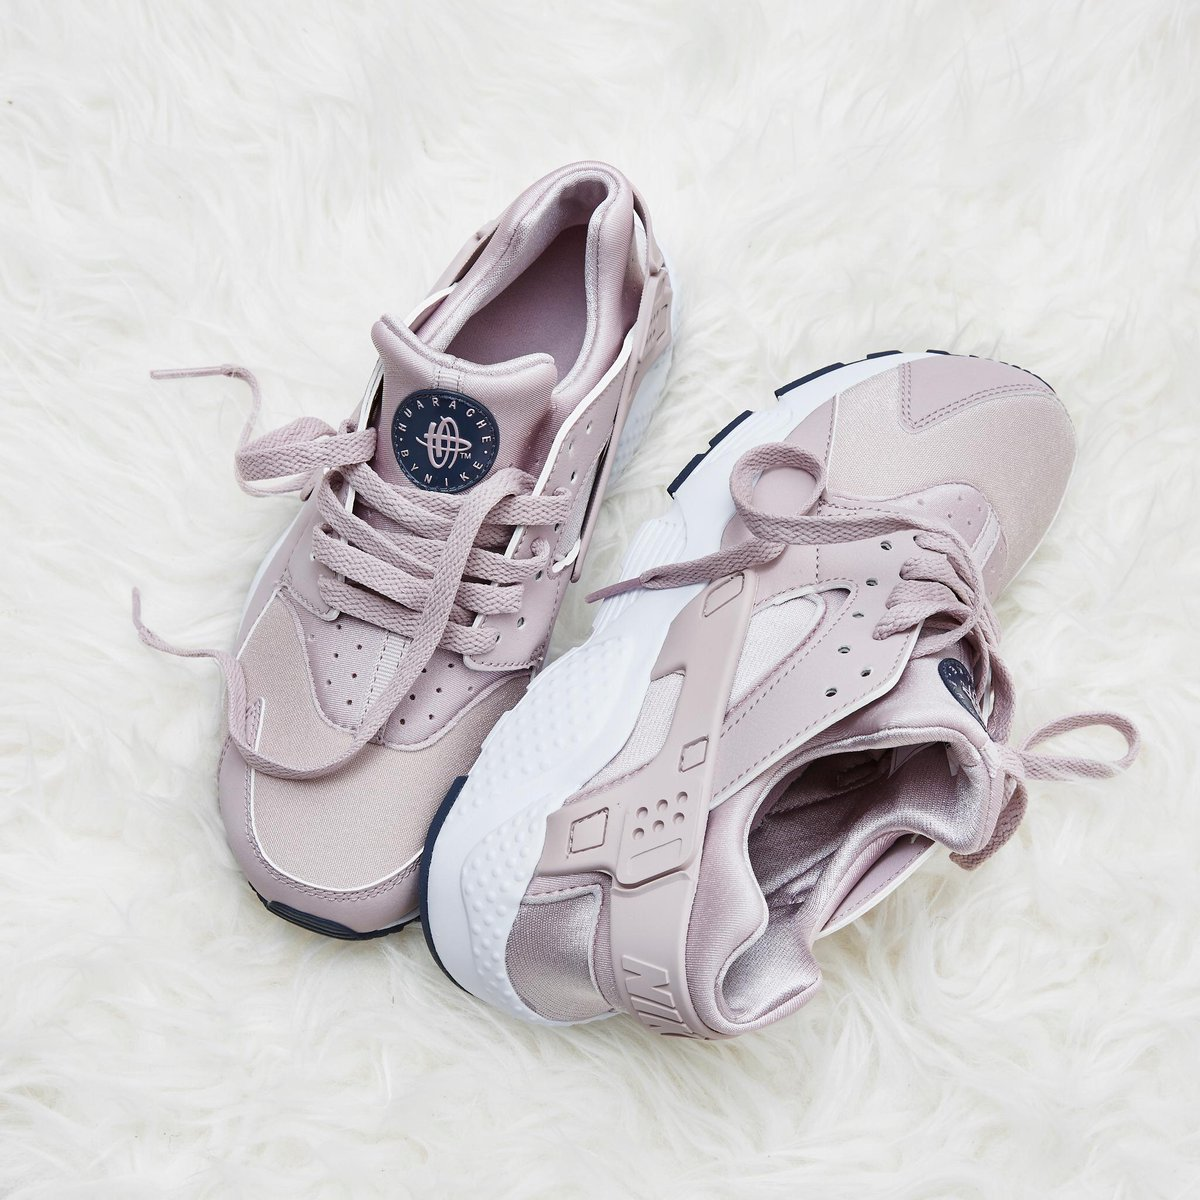 34244c15a176 On Fridays we wear Nike Huarache Gs in Particle Rose Pink! Happy Friday 💖  💗 🎀 👛  liveyourbestlife http   bit.ly 2DuLrjC pic.twitter.com mpWERRCQot